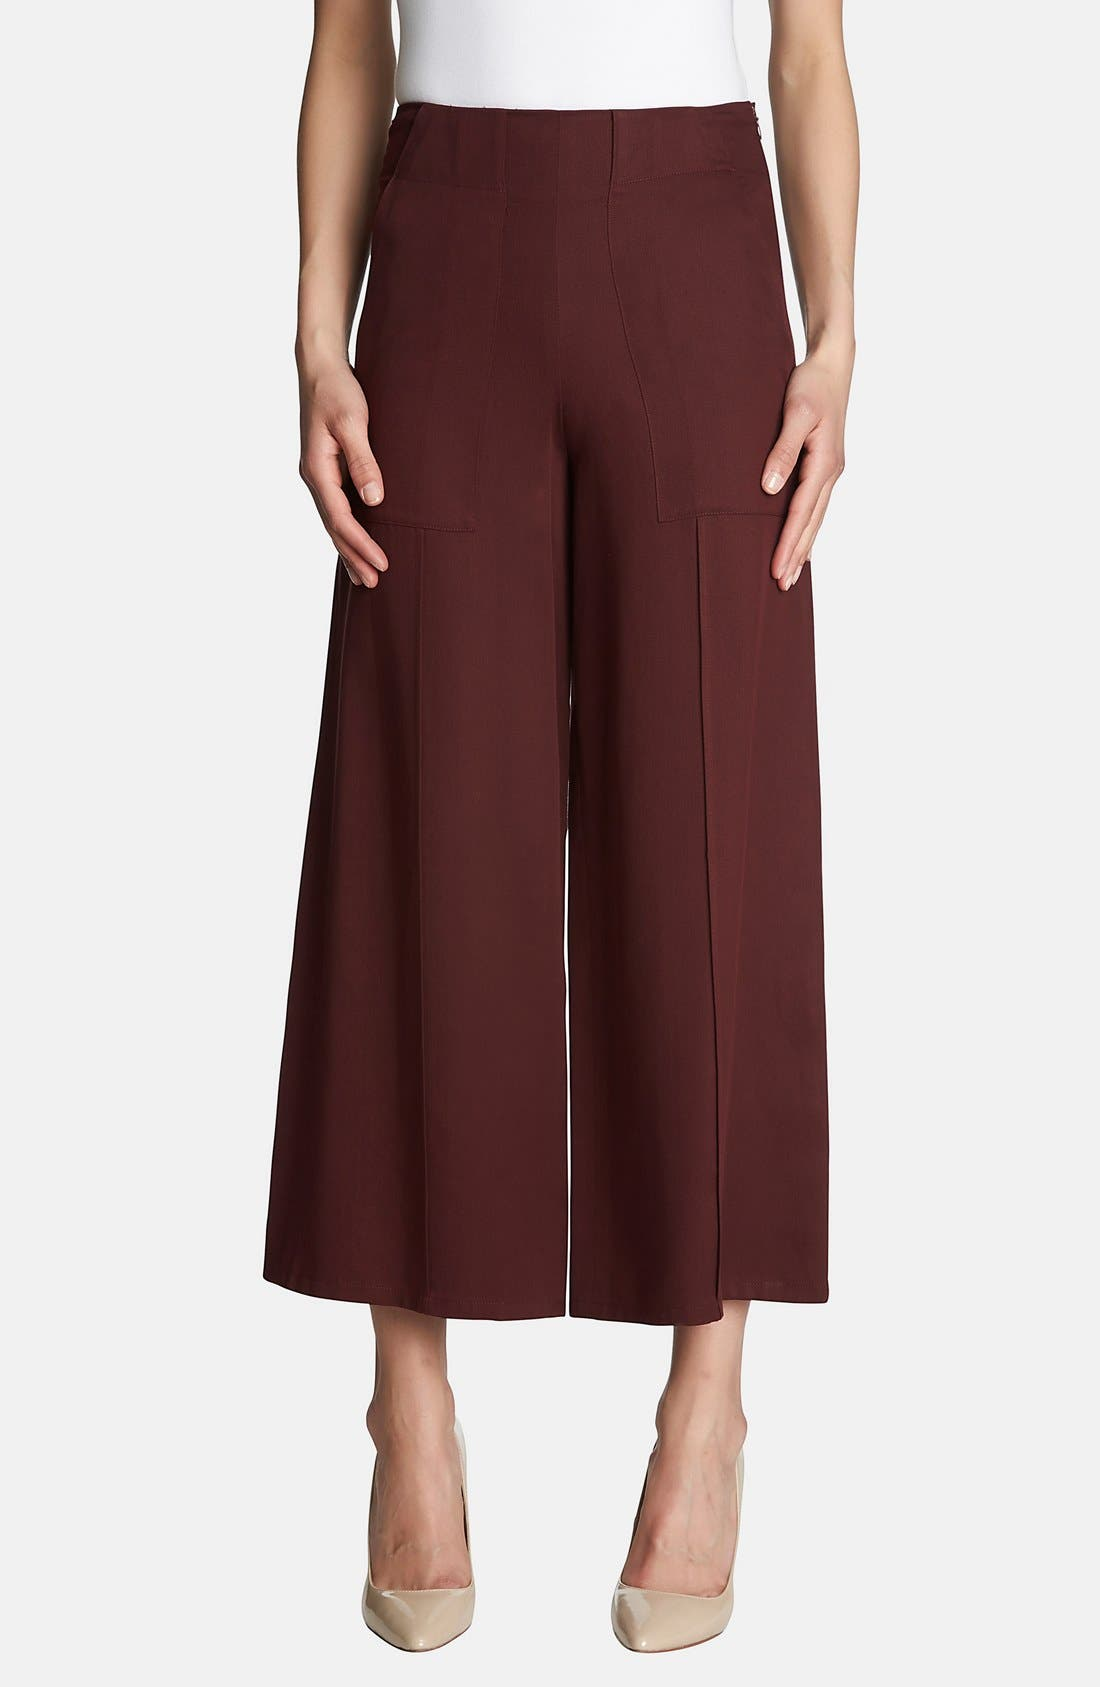 Alternate Image 1 Selected - 1.STATE High Waist Culottes